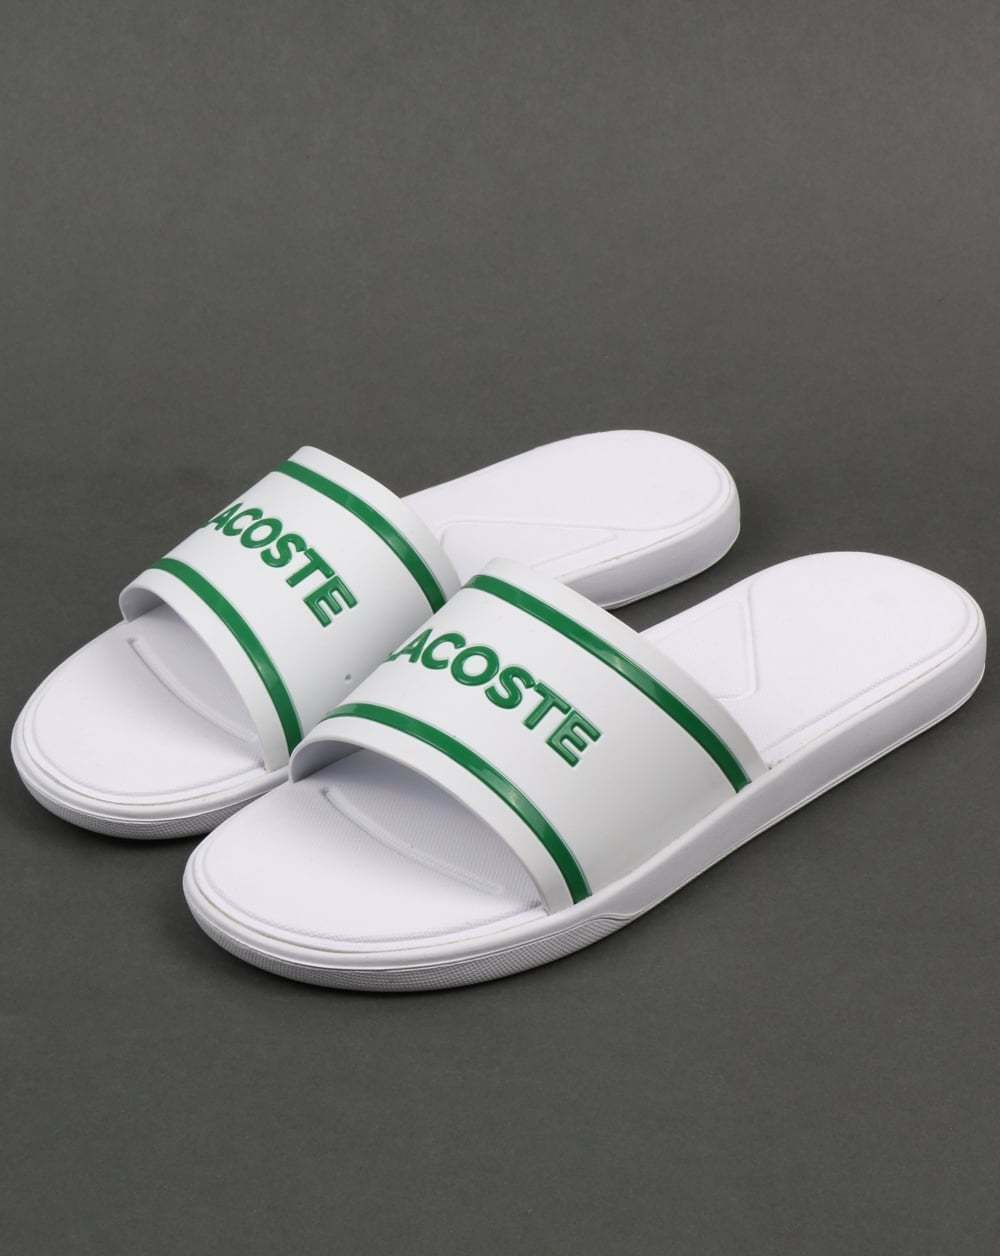 Lacoste L.30 Slides in - Blanco & Verde - in flip flop sandals pool Zapatos beach 8a2d9a